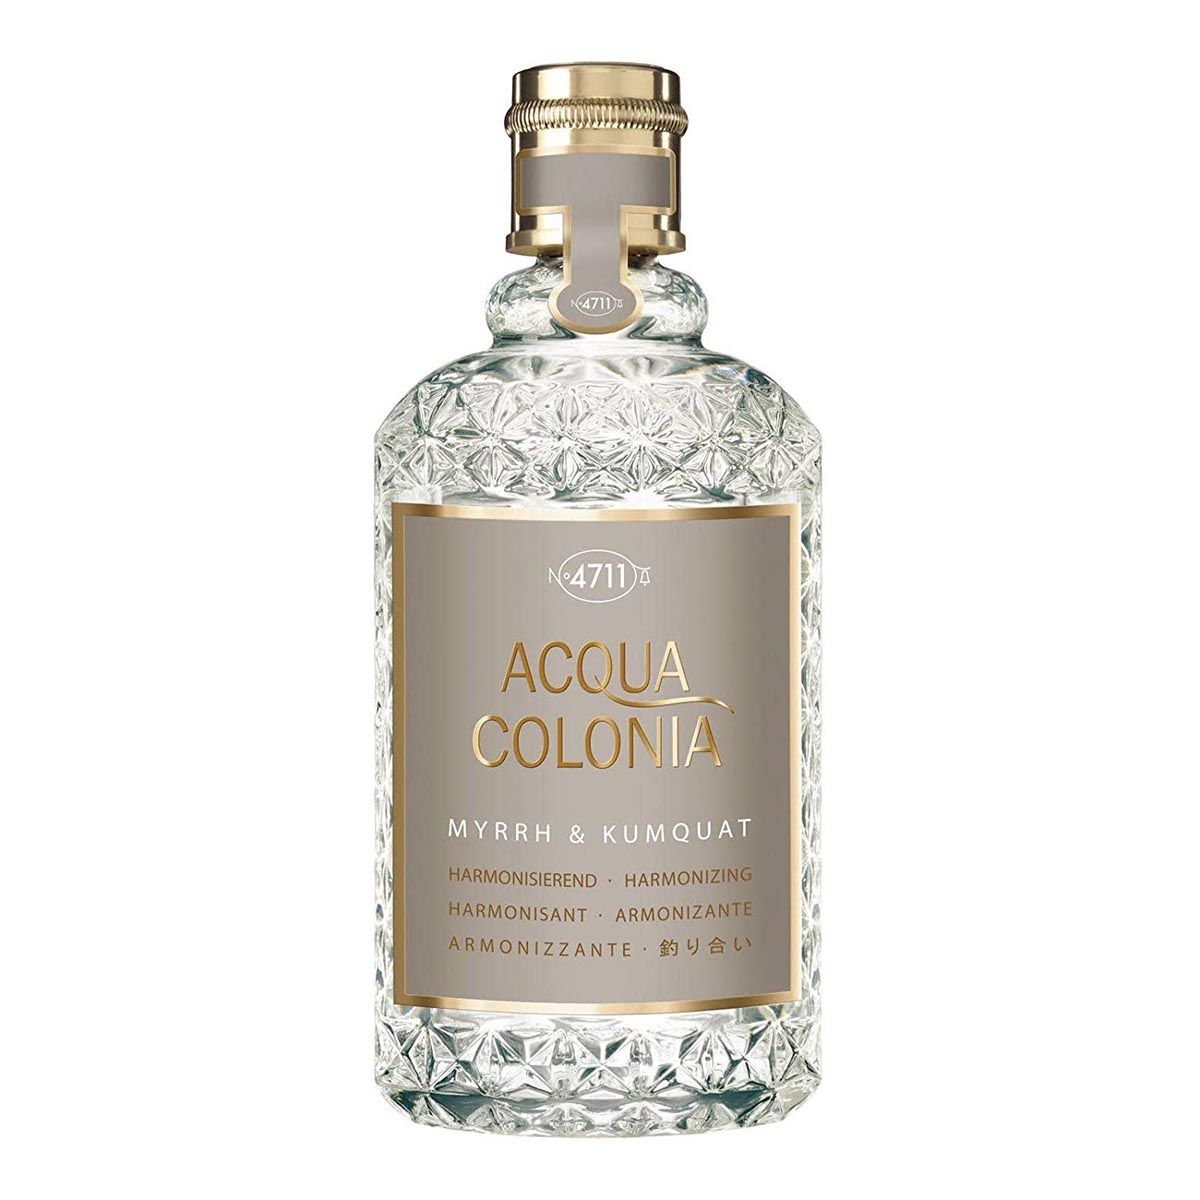 4711 acqua colonia mirra kumquat eau de cologne 170ml vaporizador